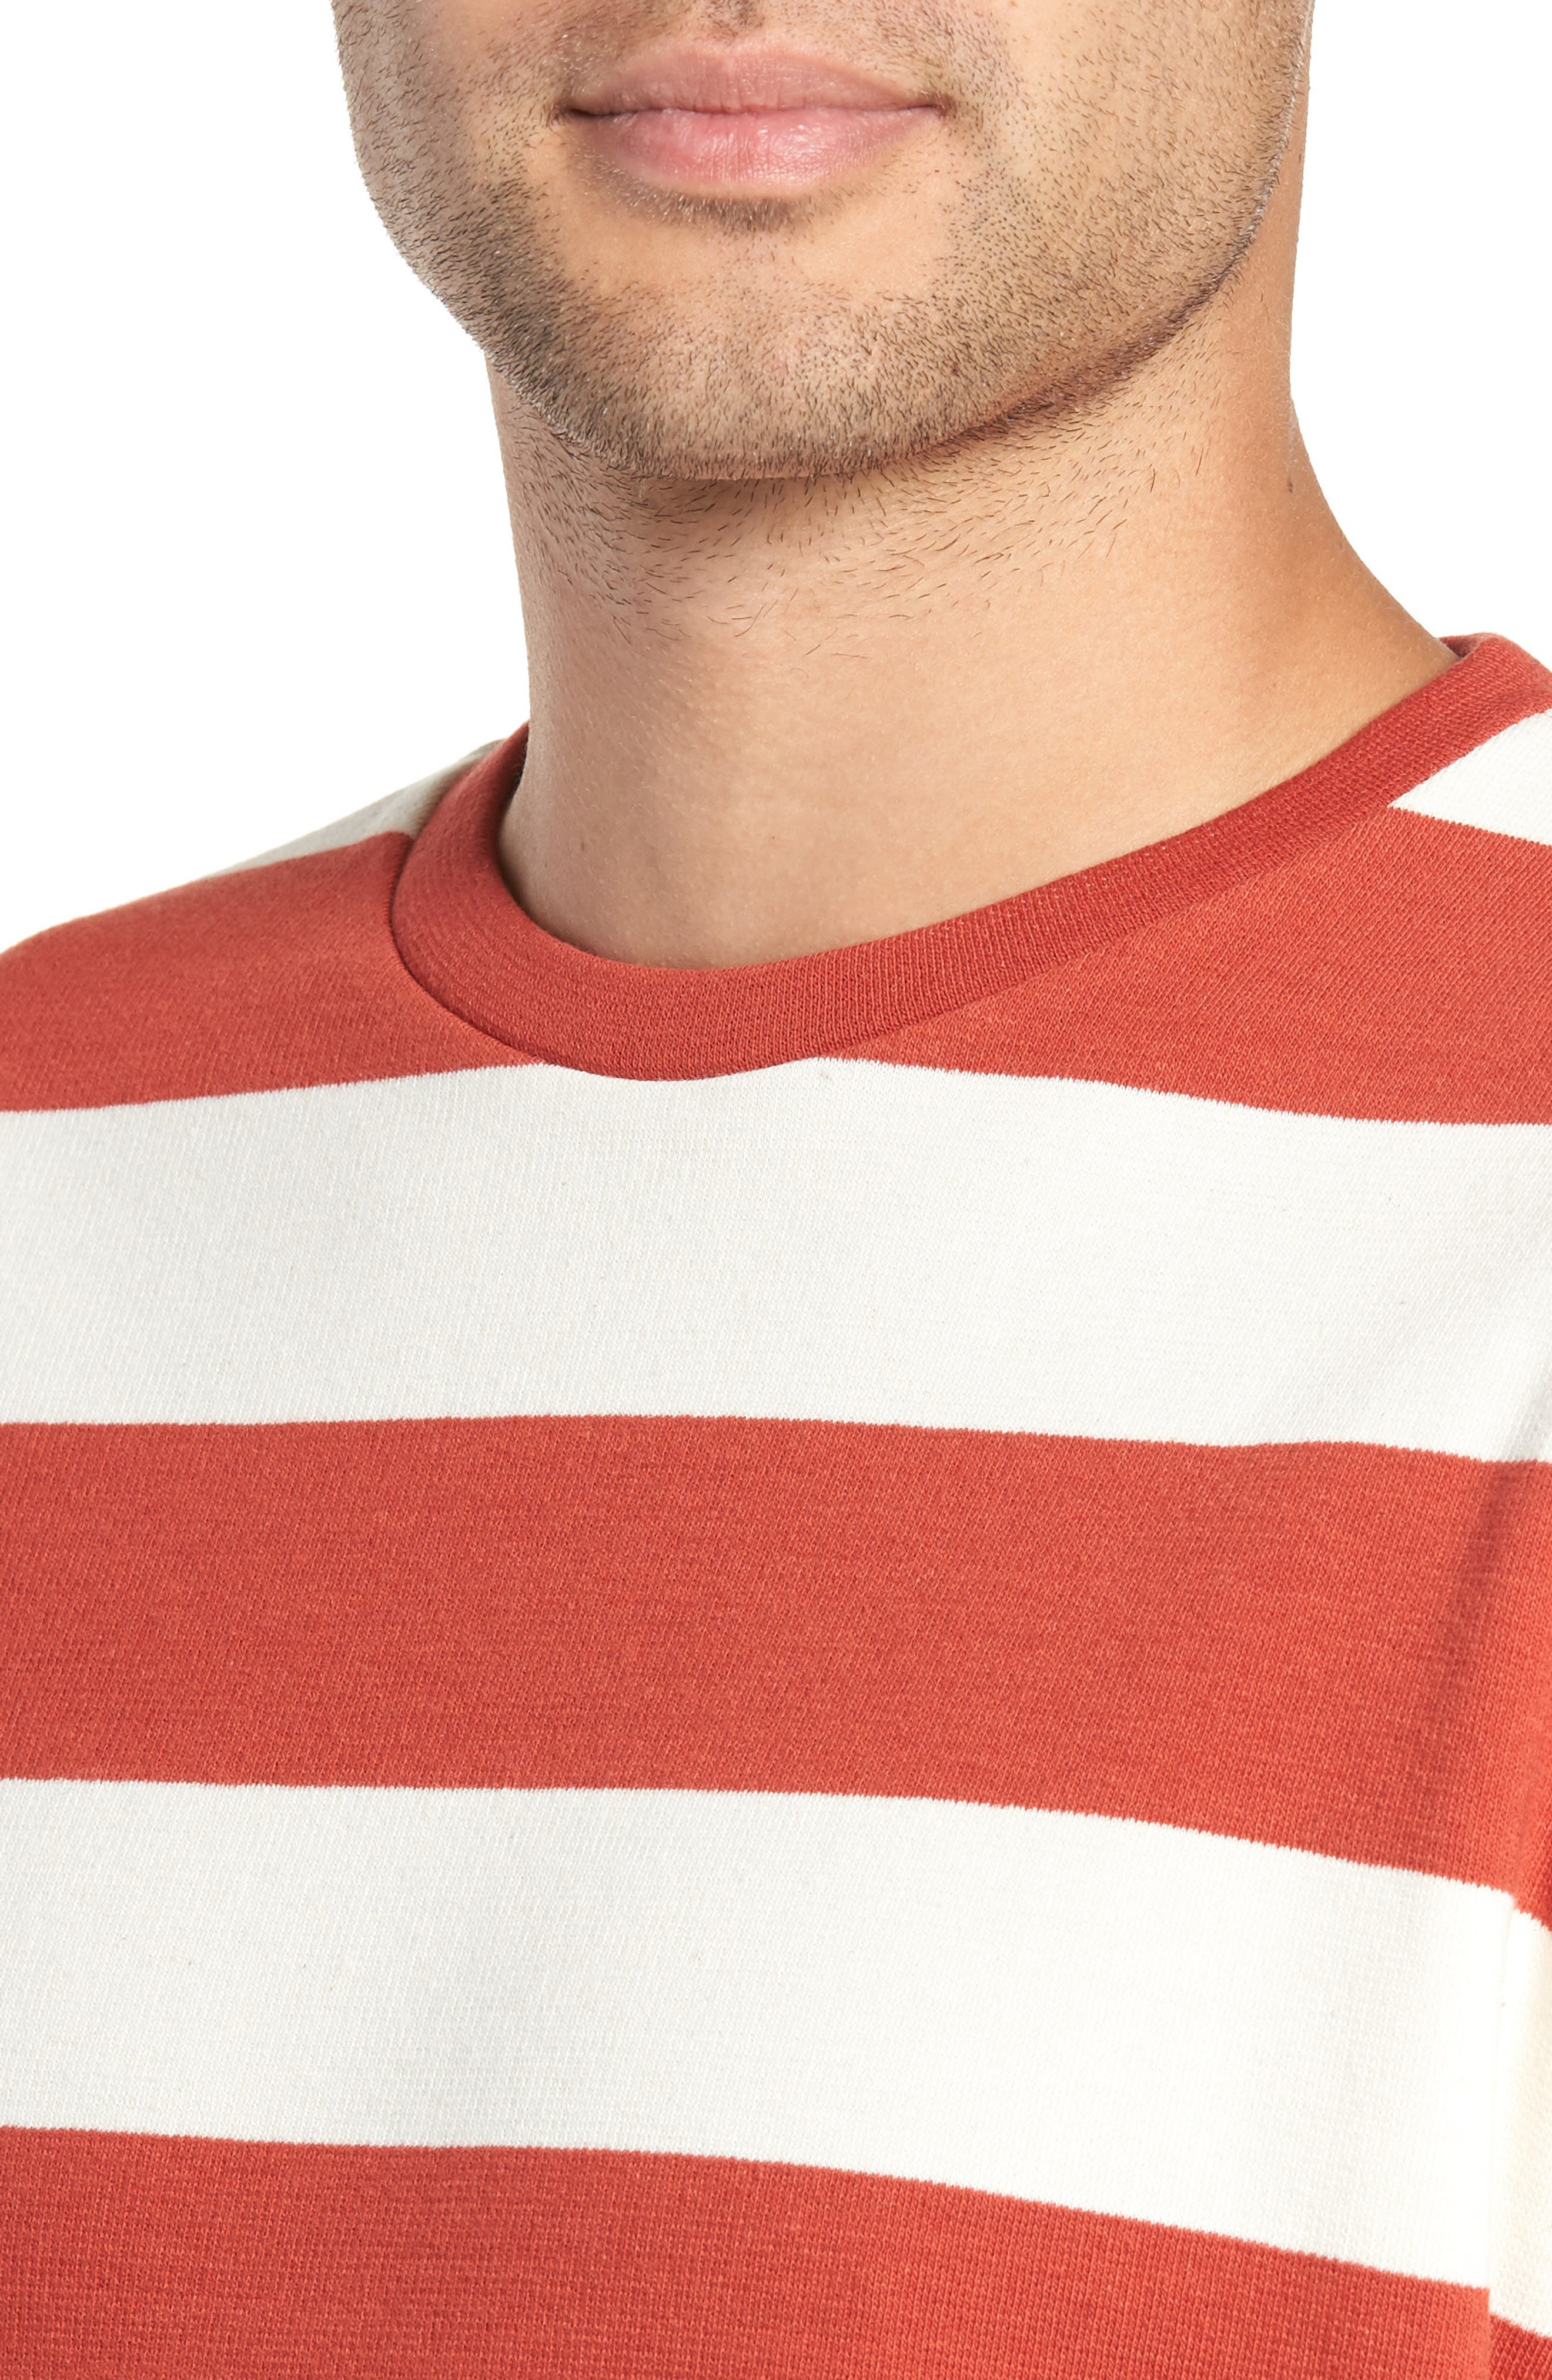 Stripe Crewneck Sweatshirt,                             Alternate thumbnail 4, color,                             ORANGE